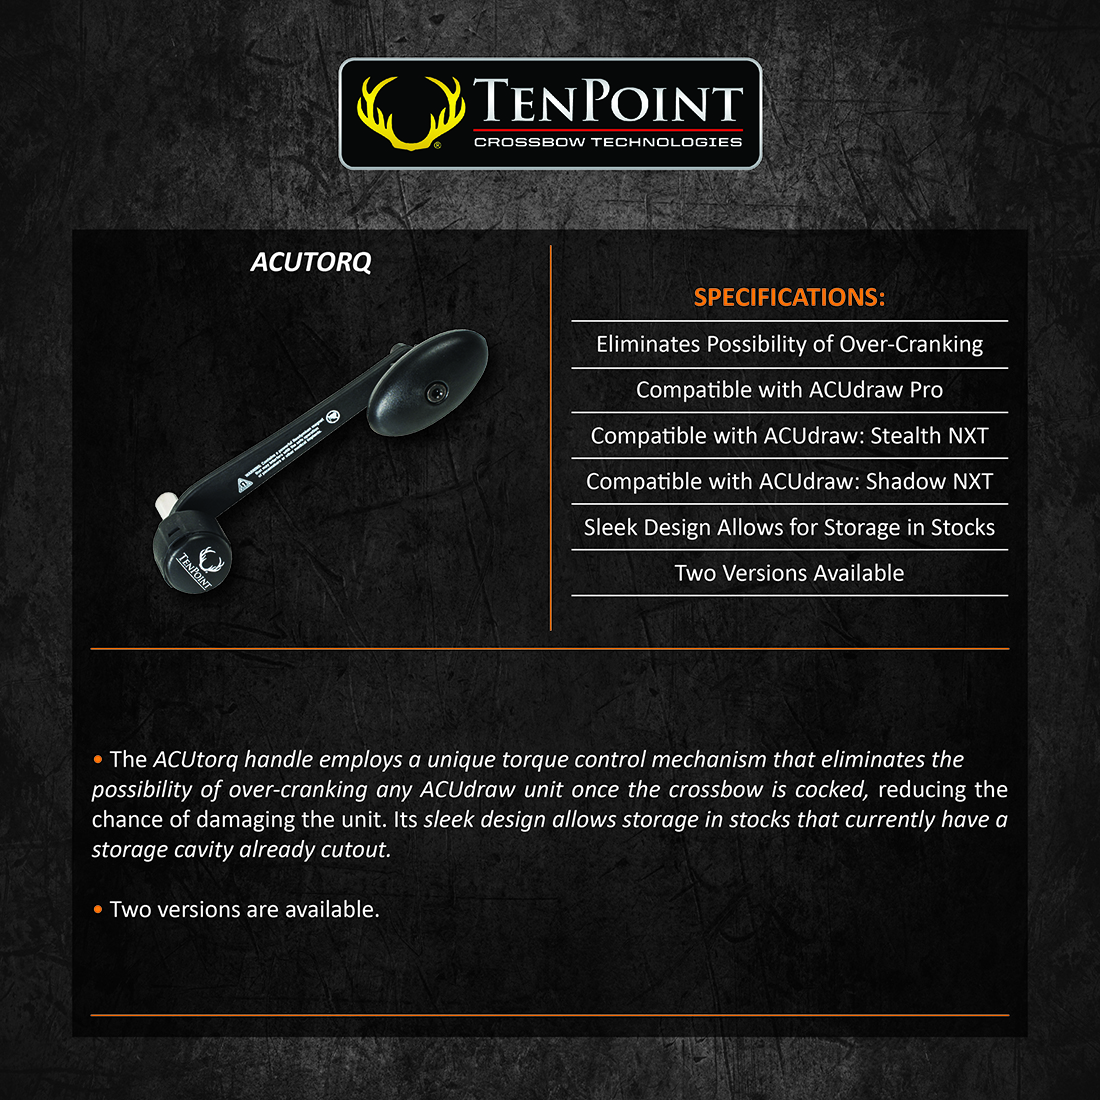 TenPoint_ACUtorq_BlackCap_Product_Description